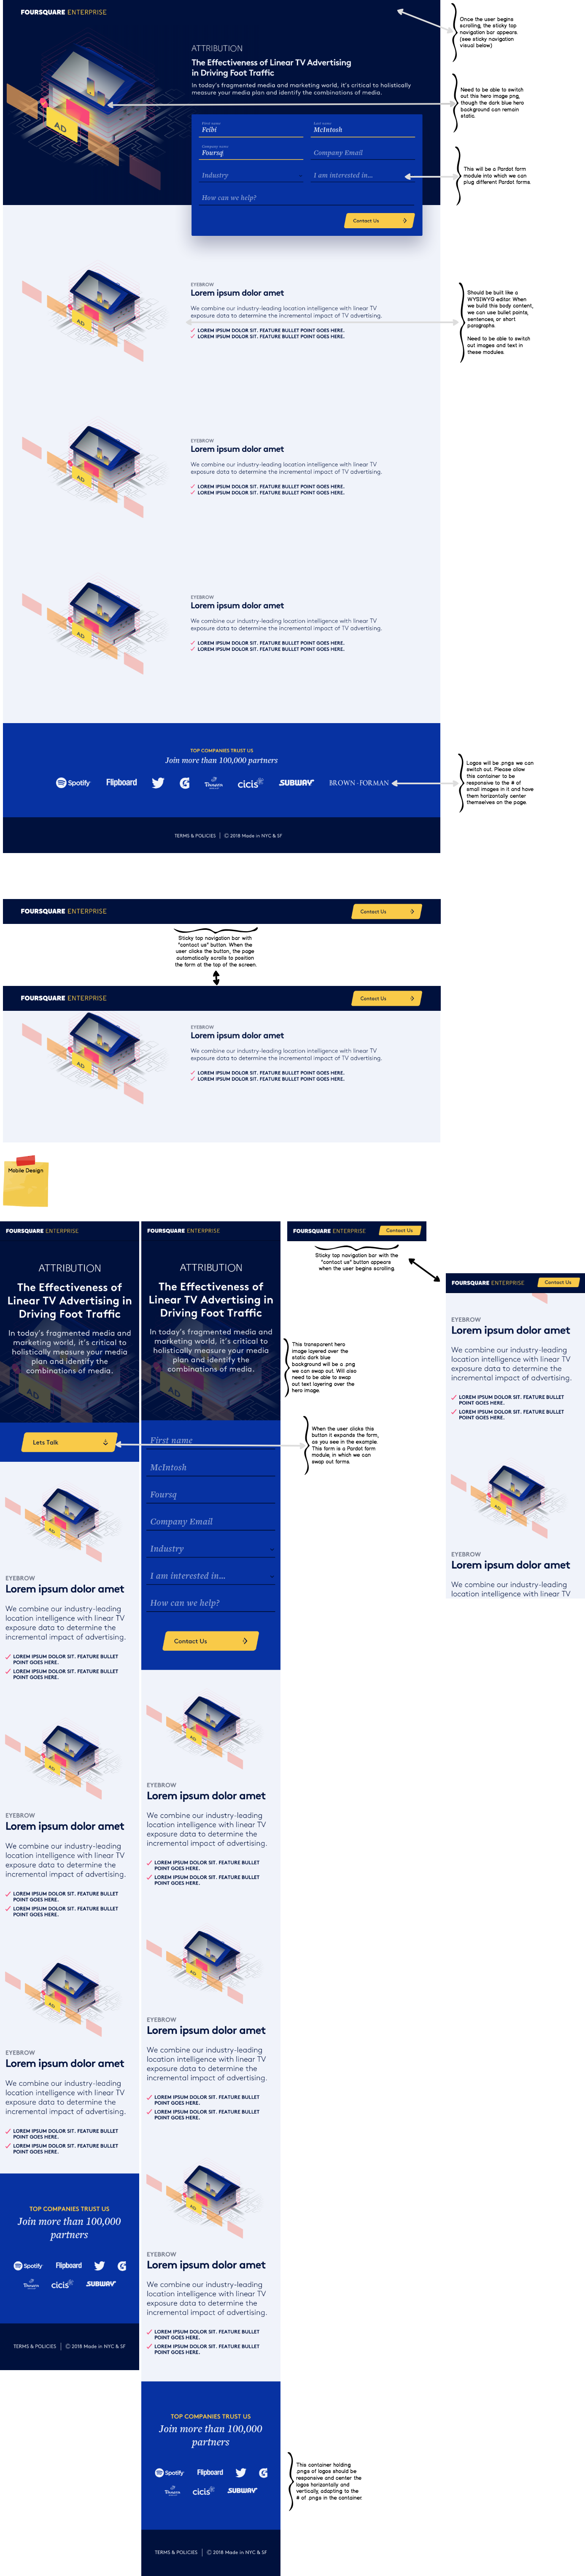 Product Template - Form on Top - Desktop + Mobile.png